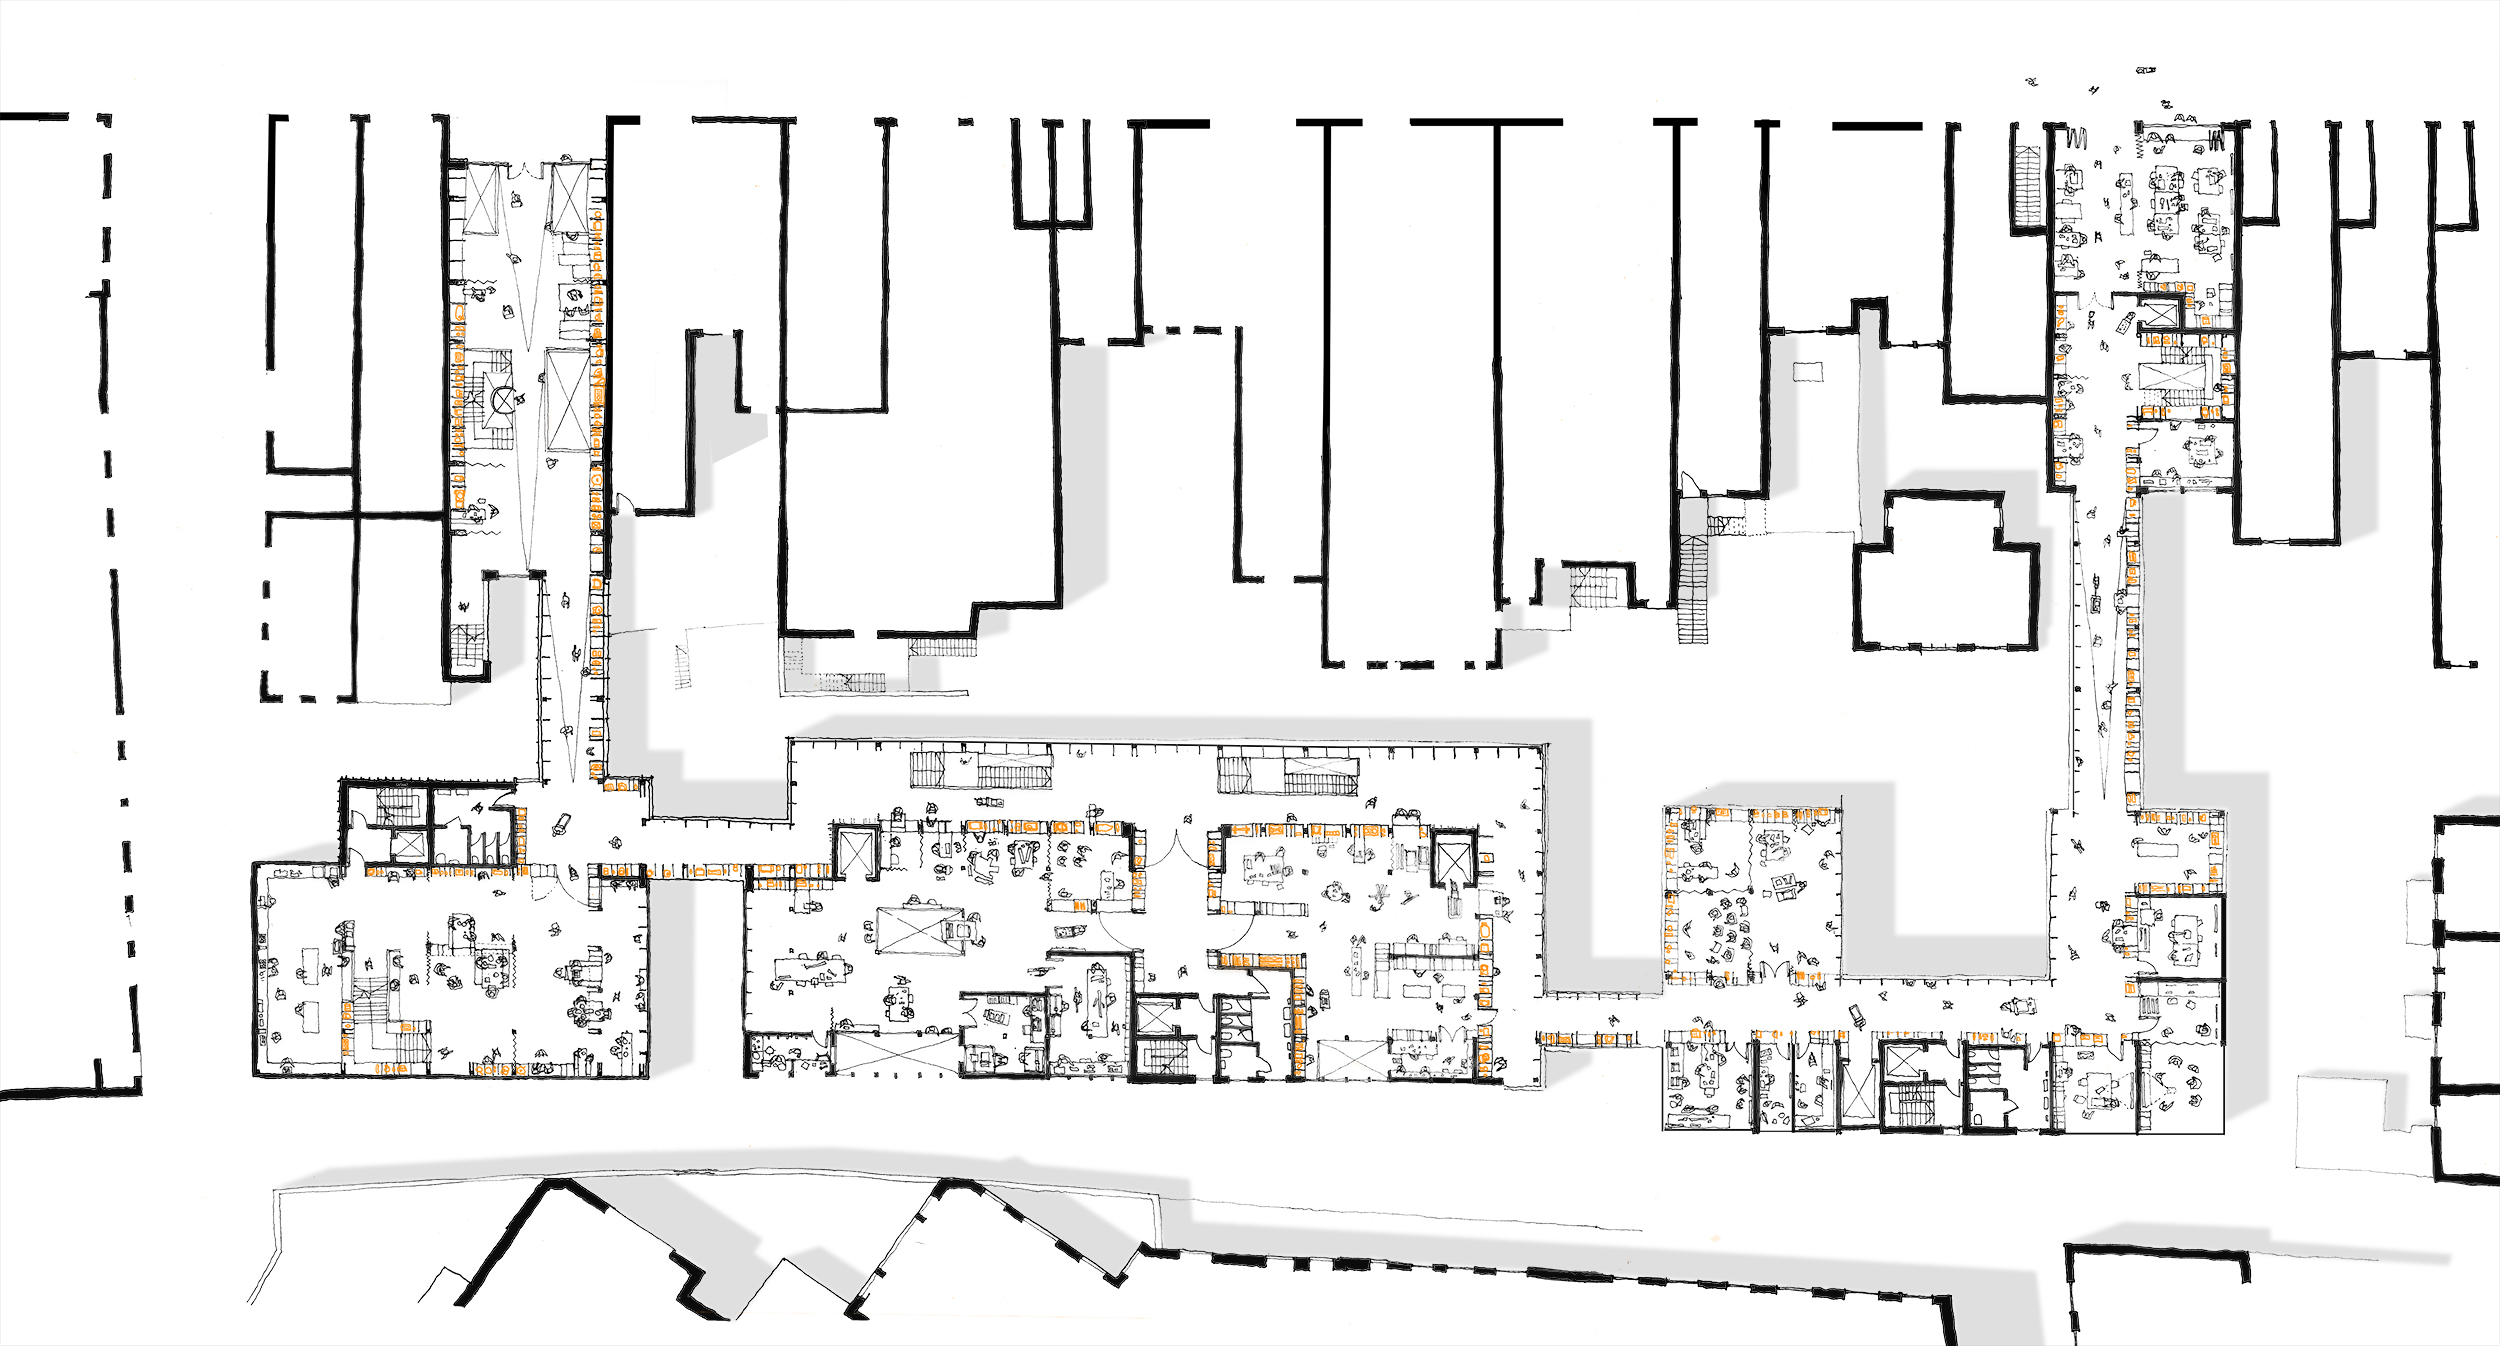 Ground floor plan – connecting to the high street